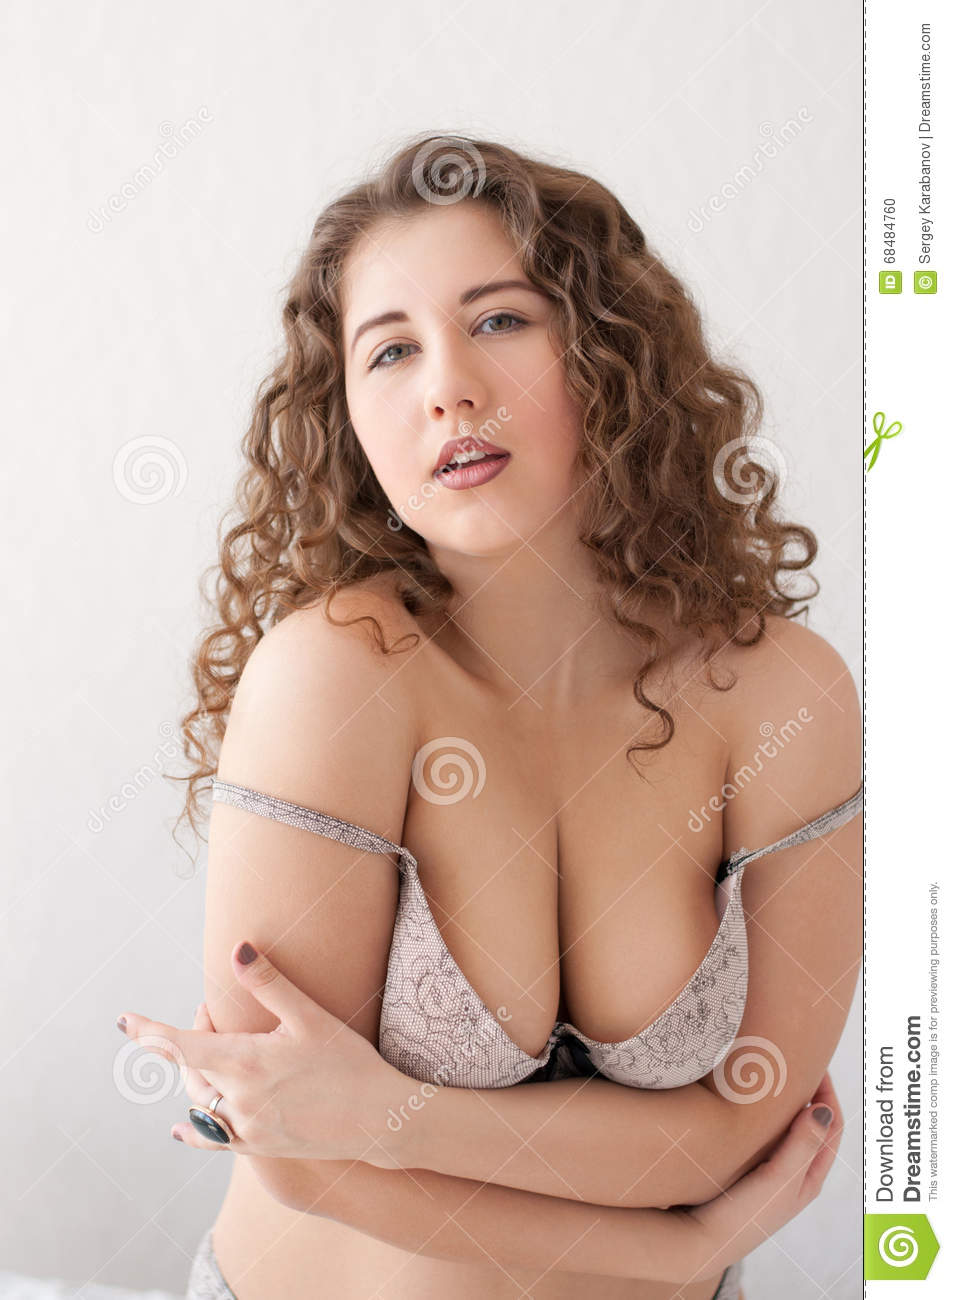 Chubby sexy models